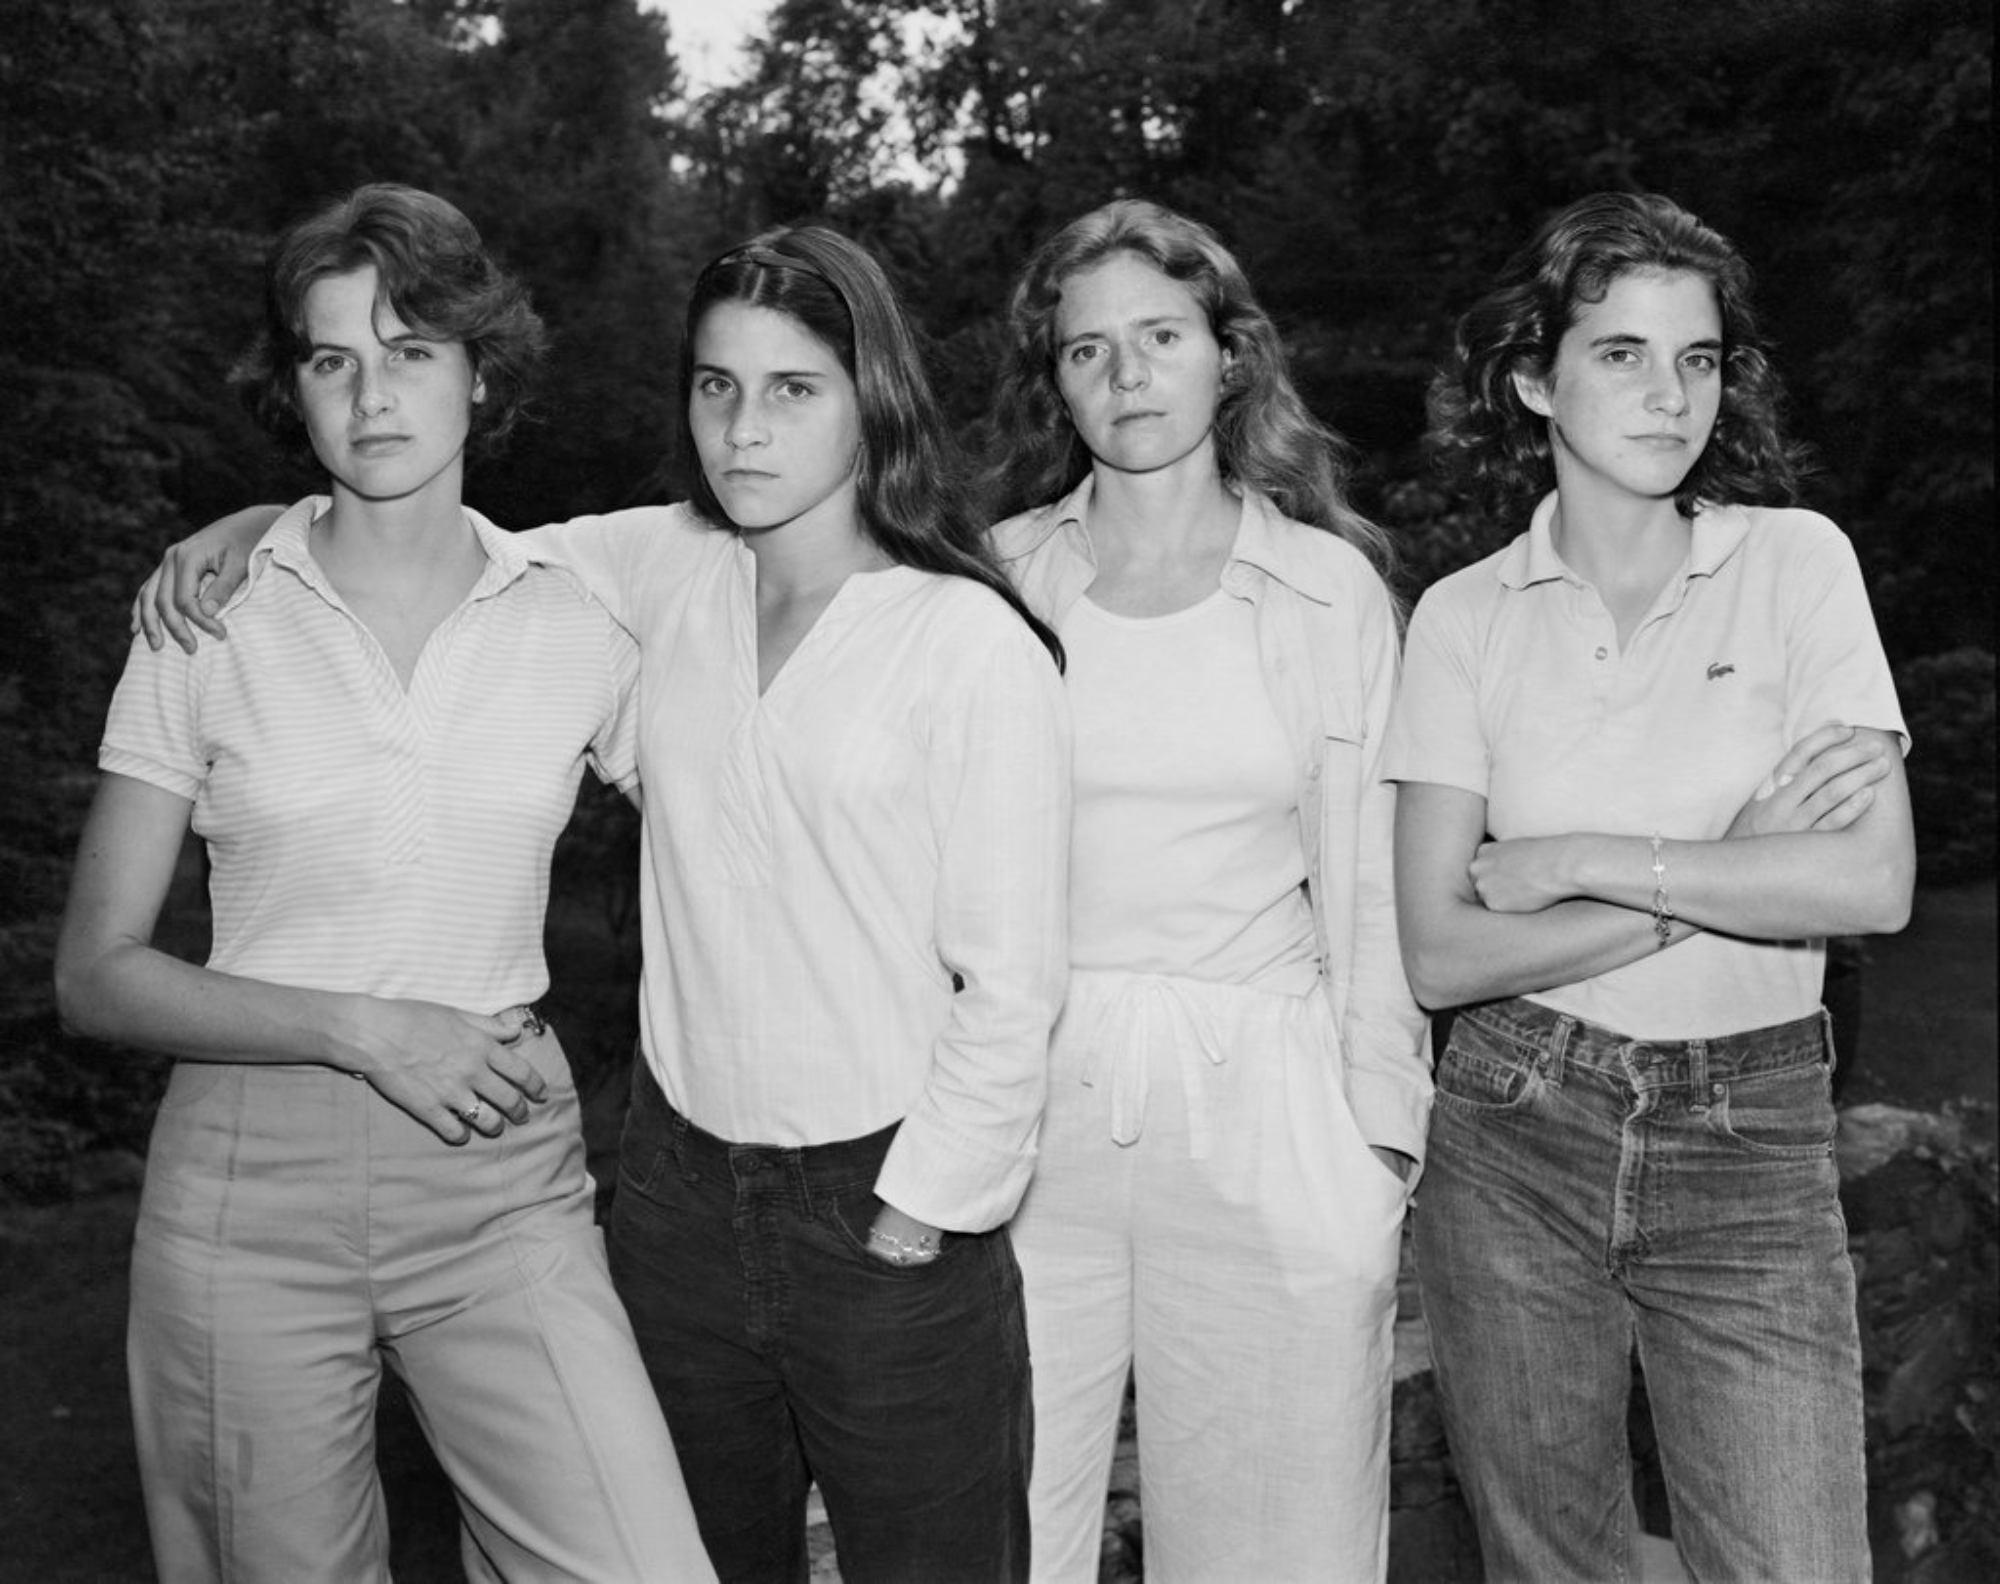 Nicholas Nixon takes a black and white photo of the Brown Sisters every year. You see four women gradually get older.